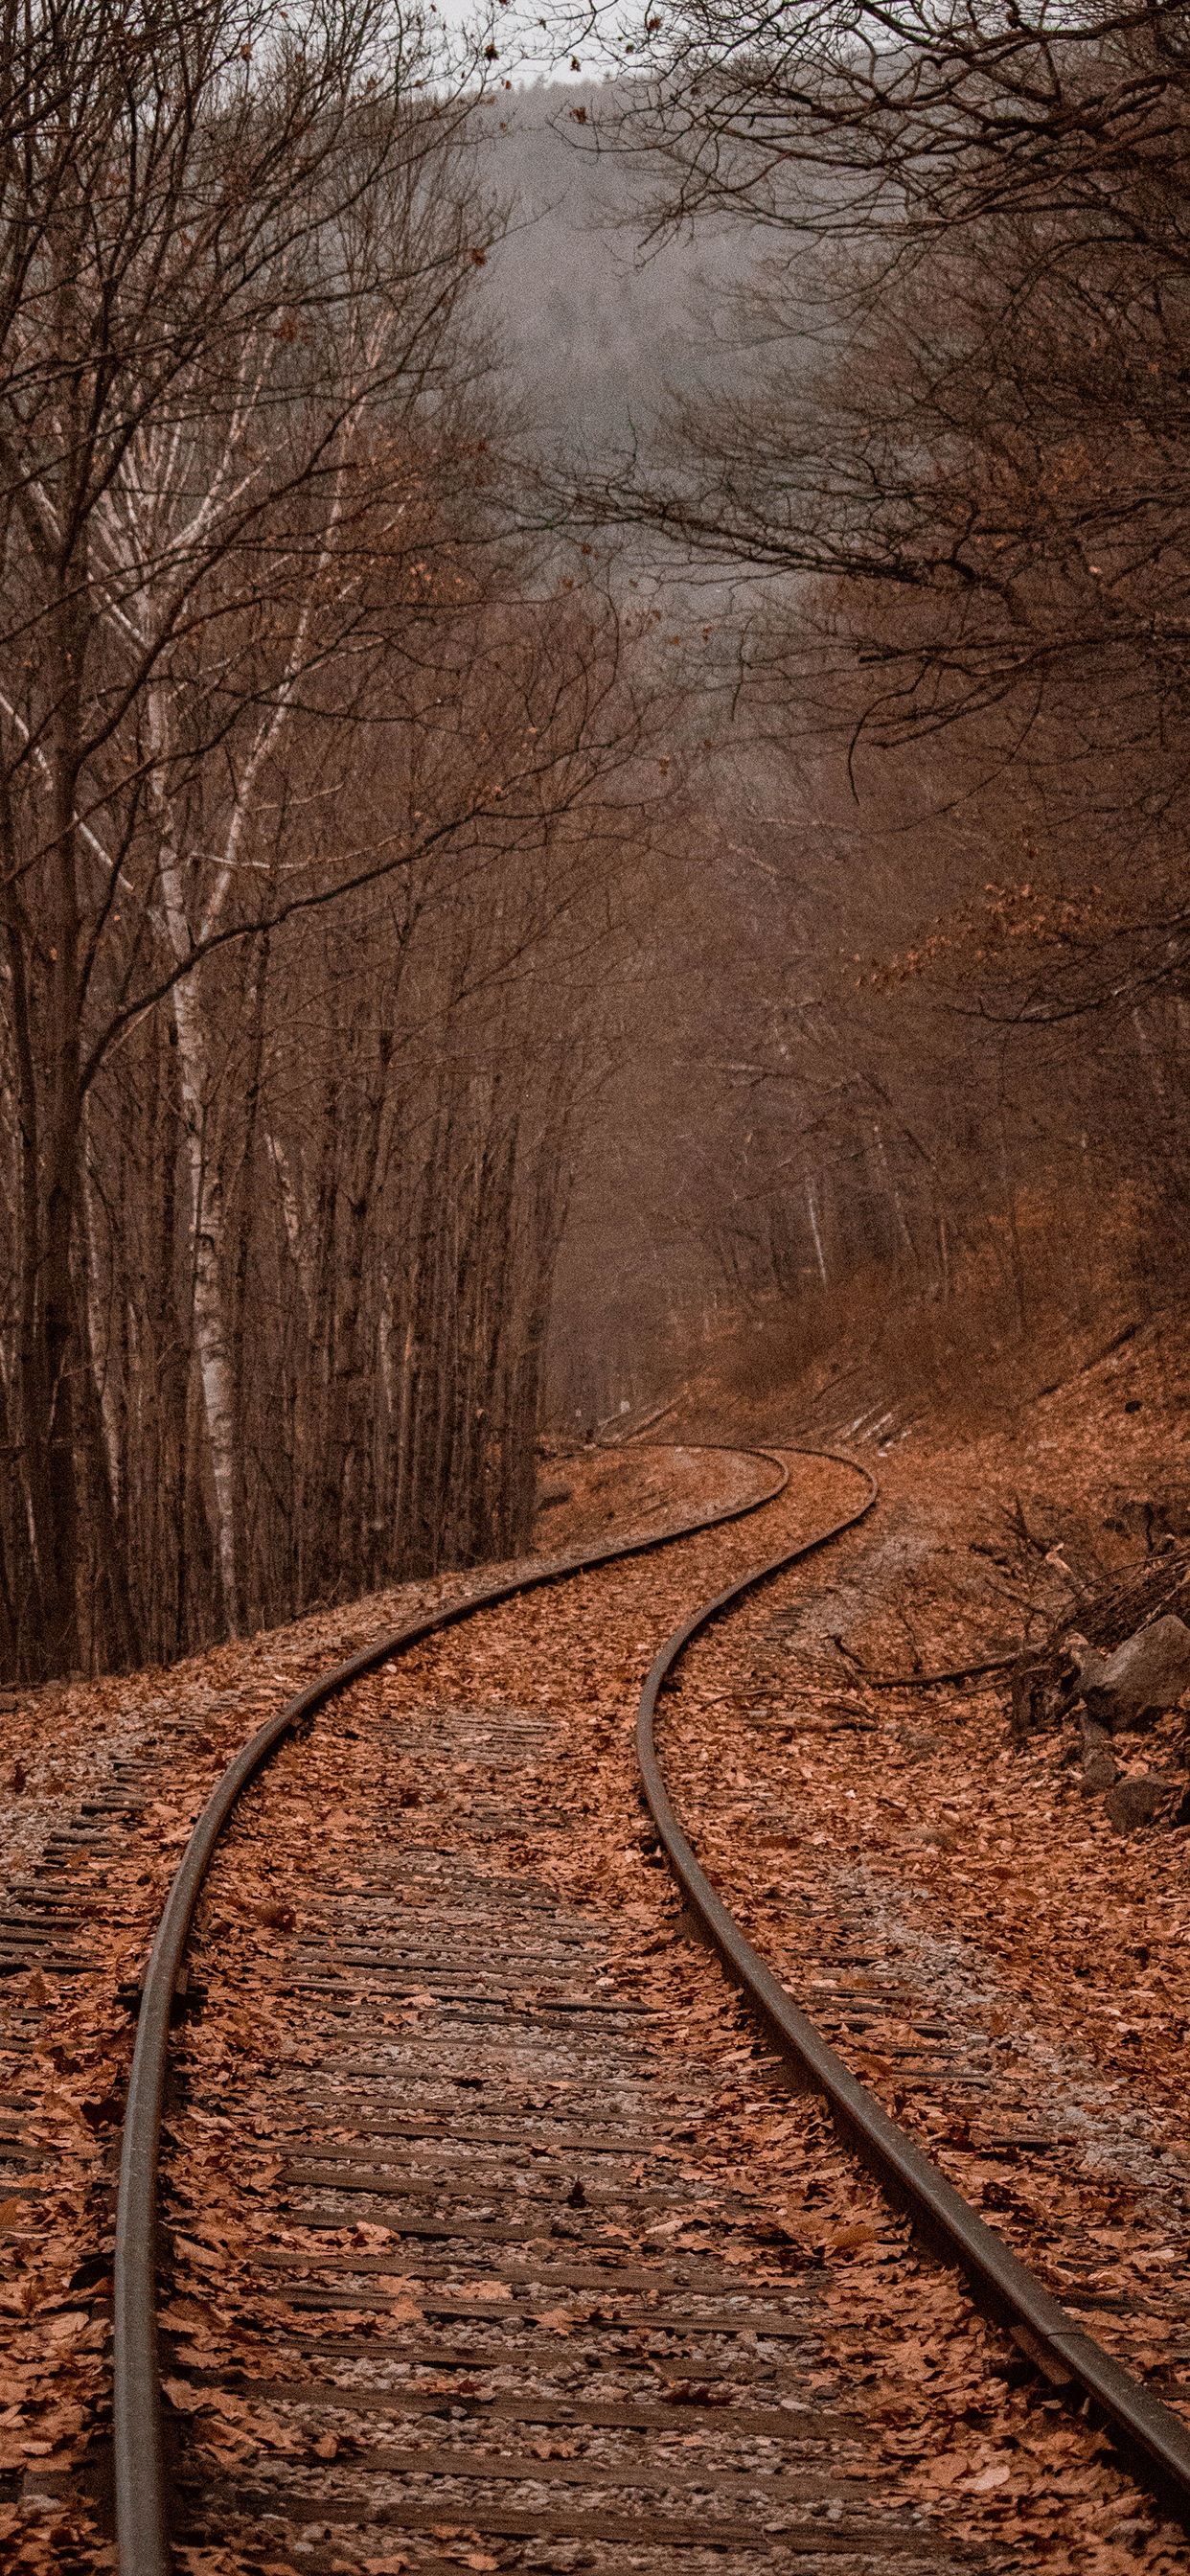 iPhone wallpaper rail way new hampshire Railway line